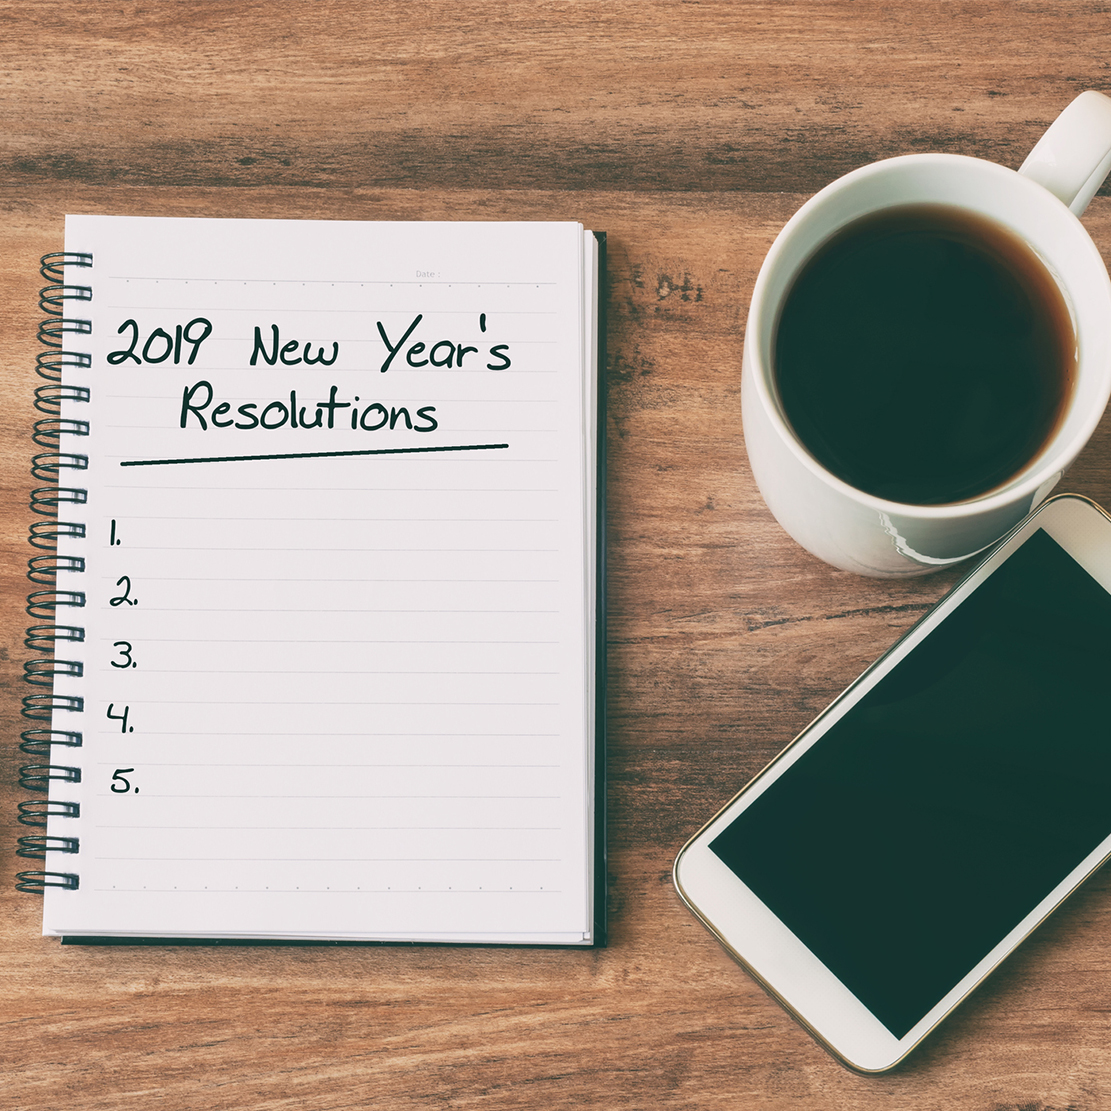 Five New Year's Financial Resolutions You Can Keep in 2019